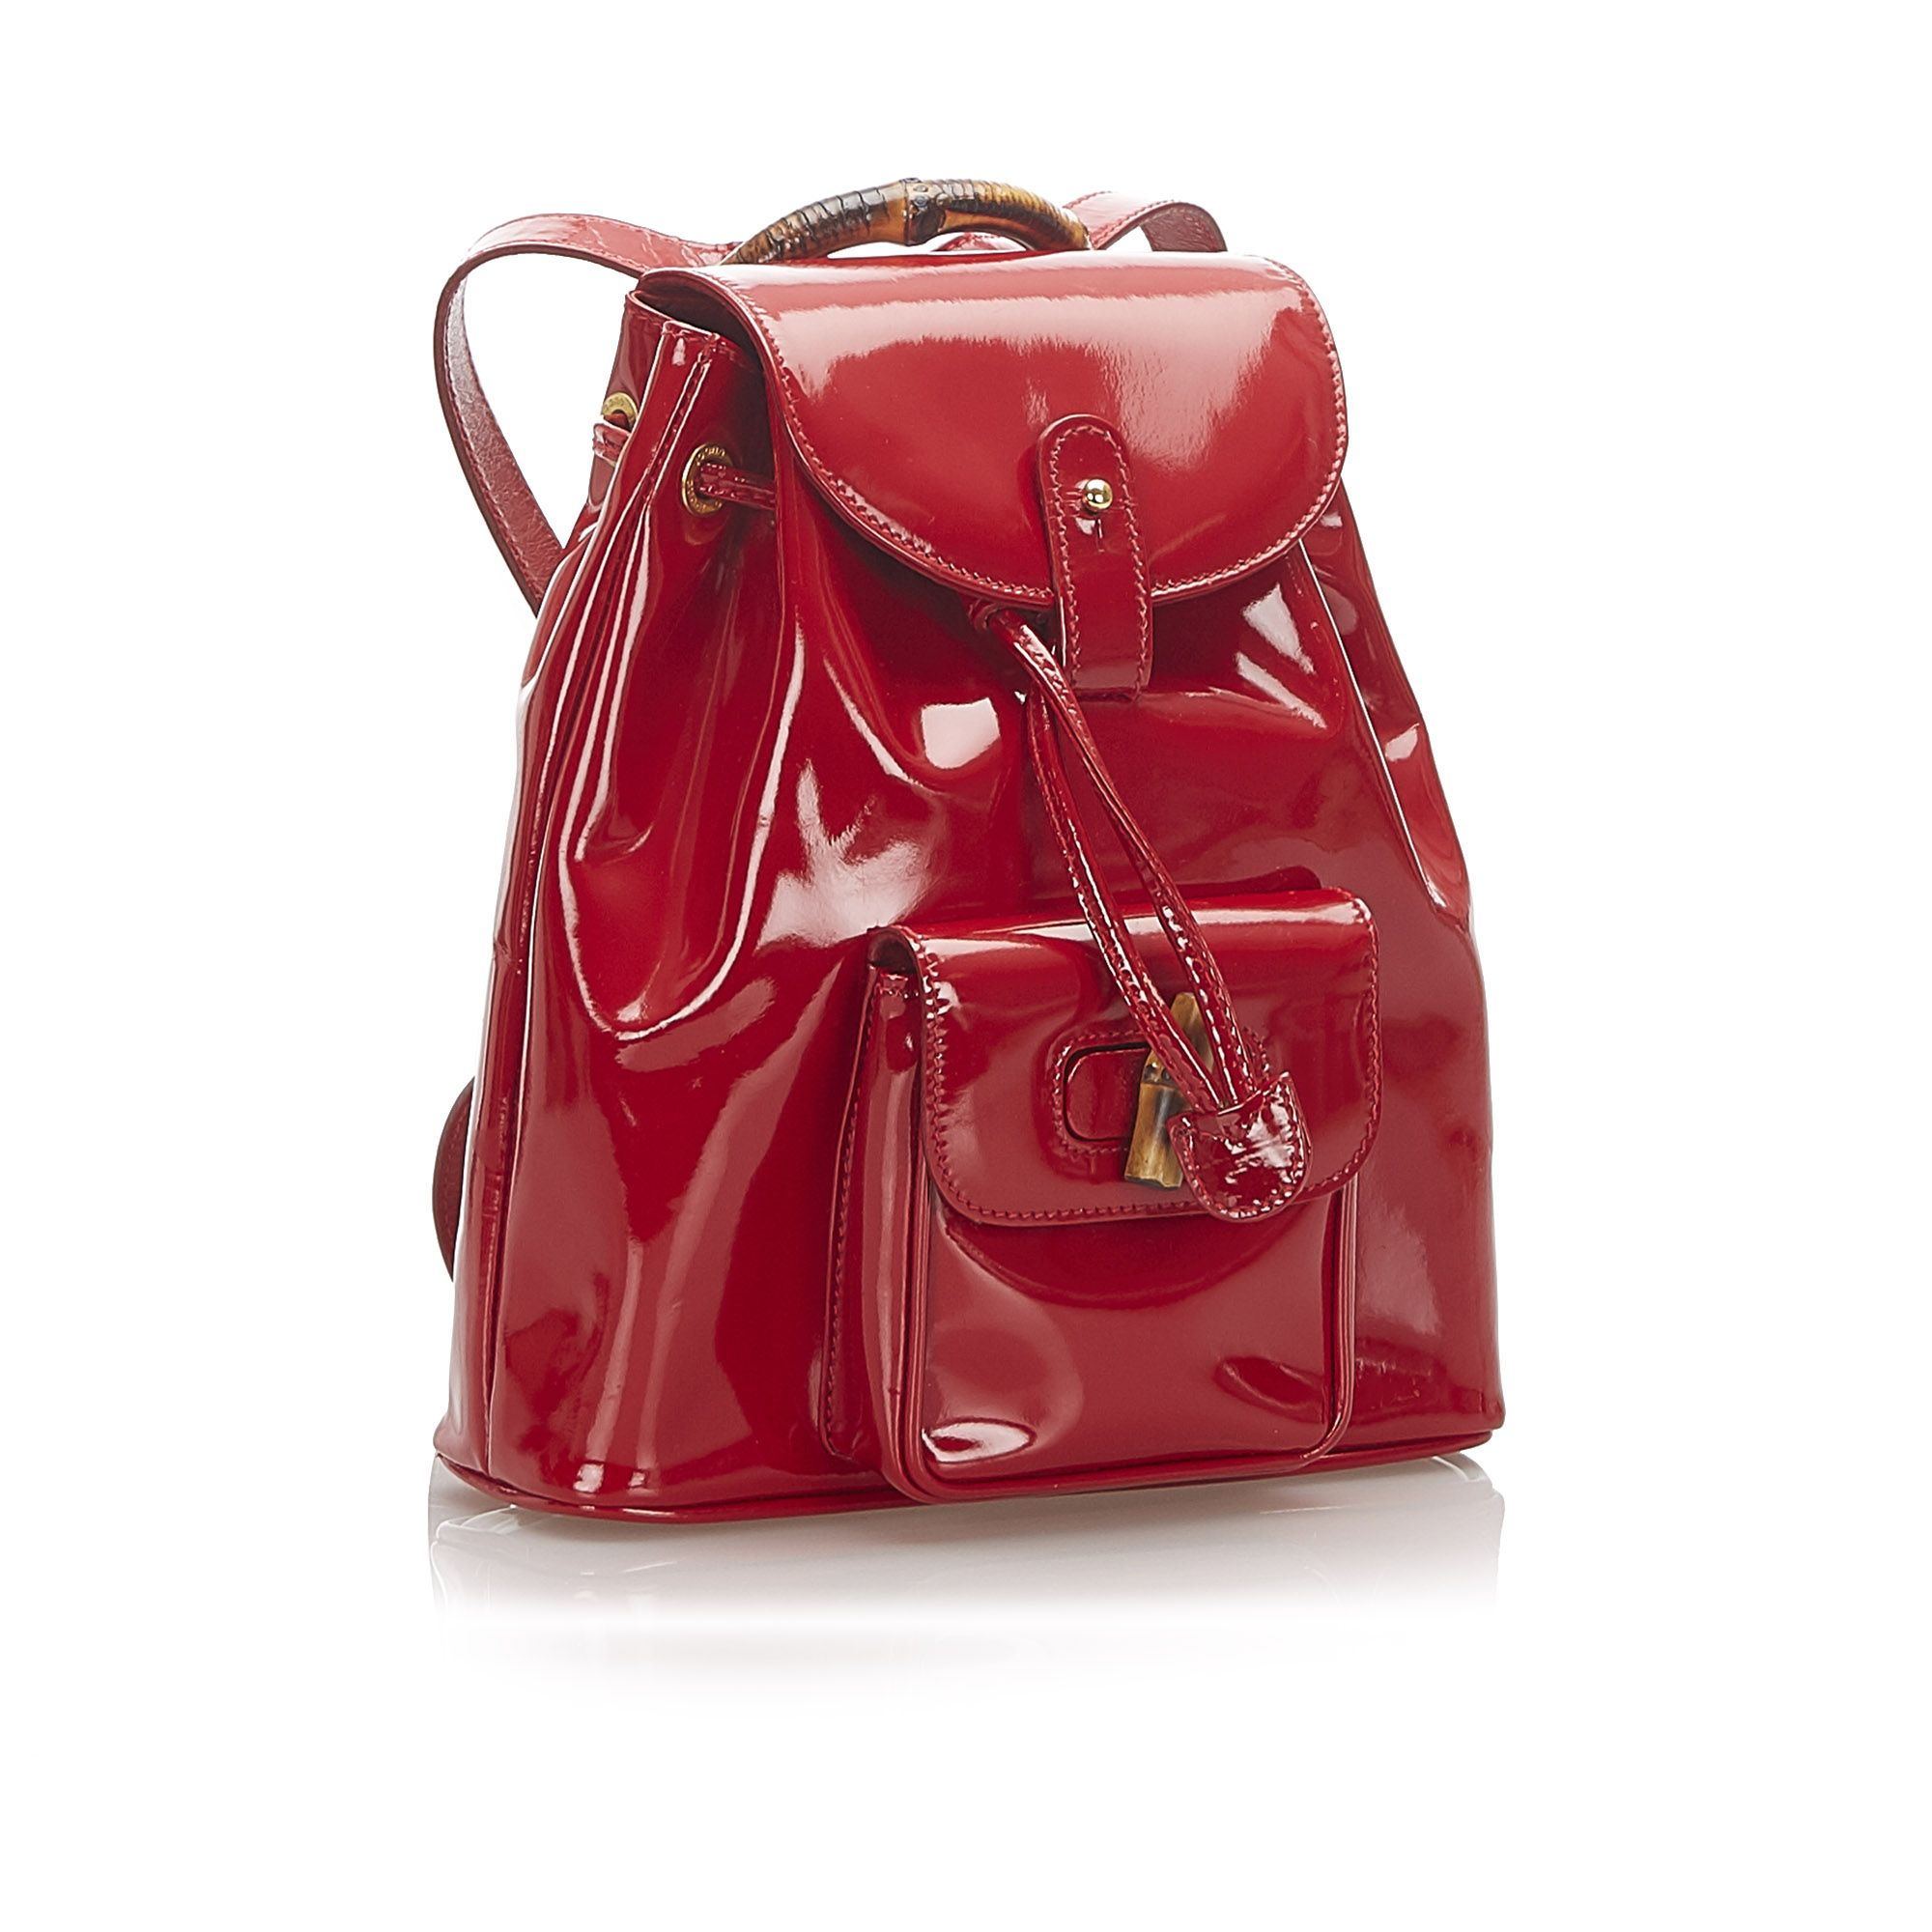 Vintage Gucci Bamboo Patent Leather Drawstring Backpack Red